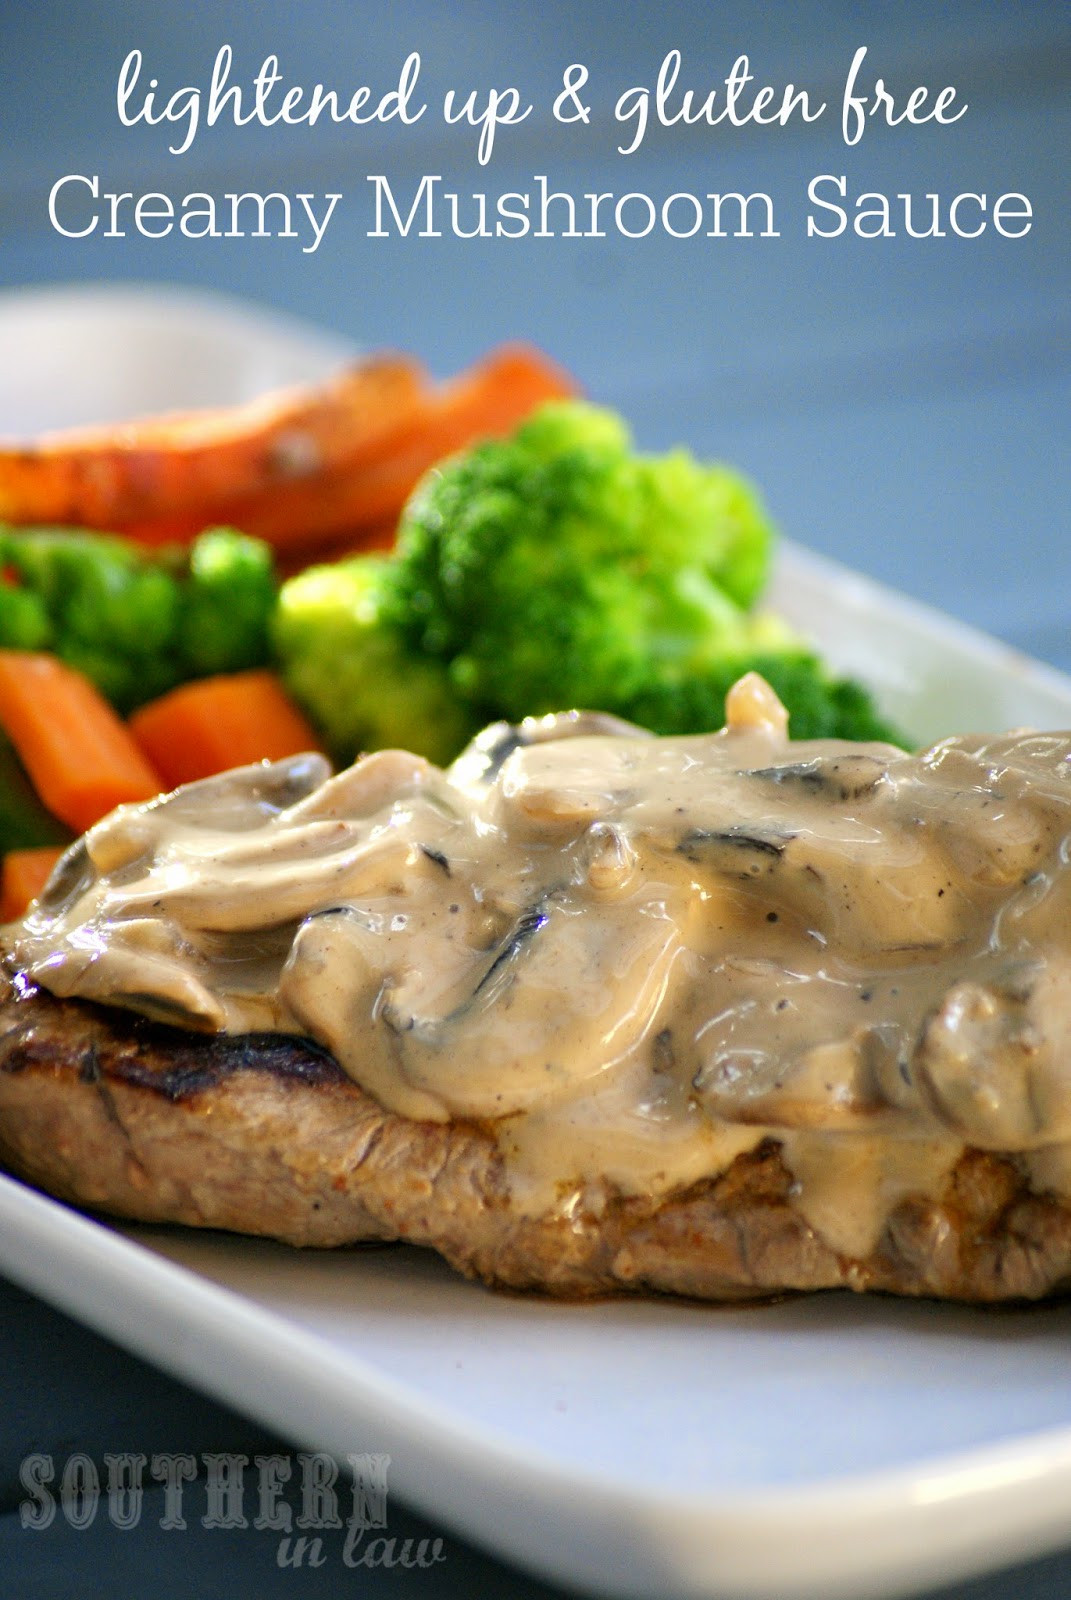 Healthy Sauces For Chicken  Southern In Law Recipe Lightened Up Creamy Mushroom